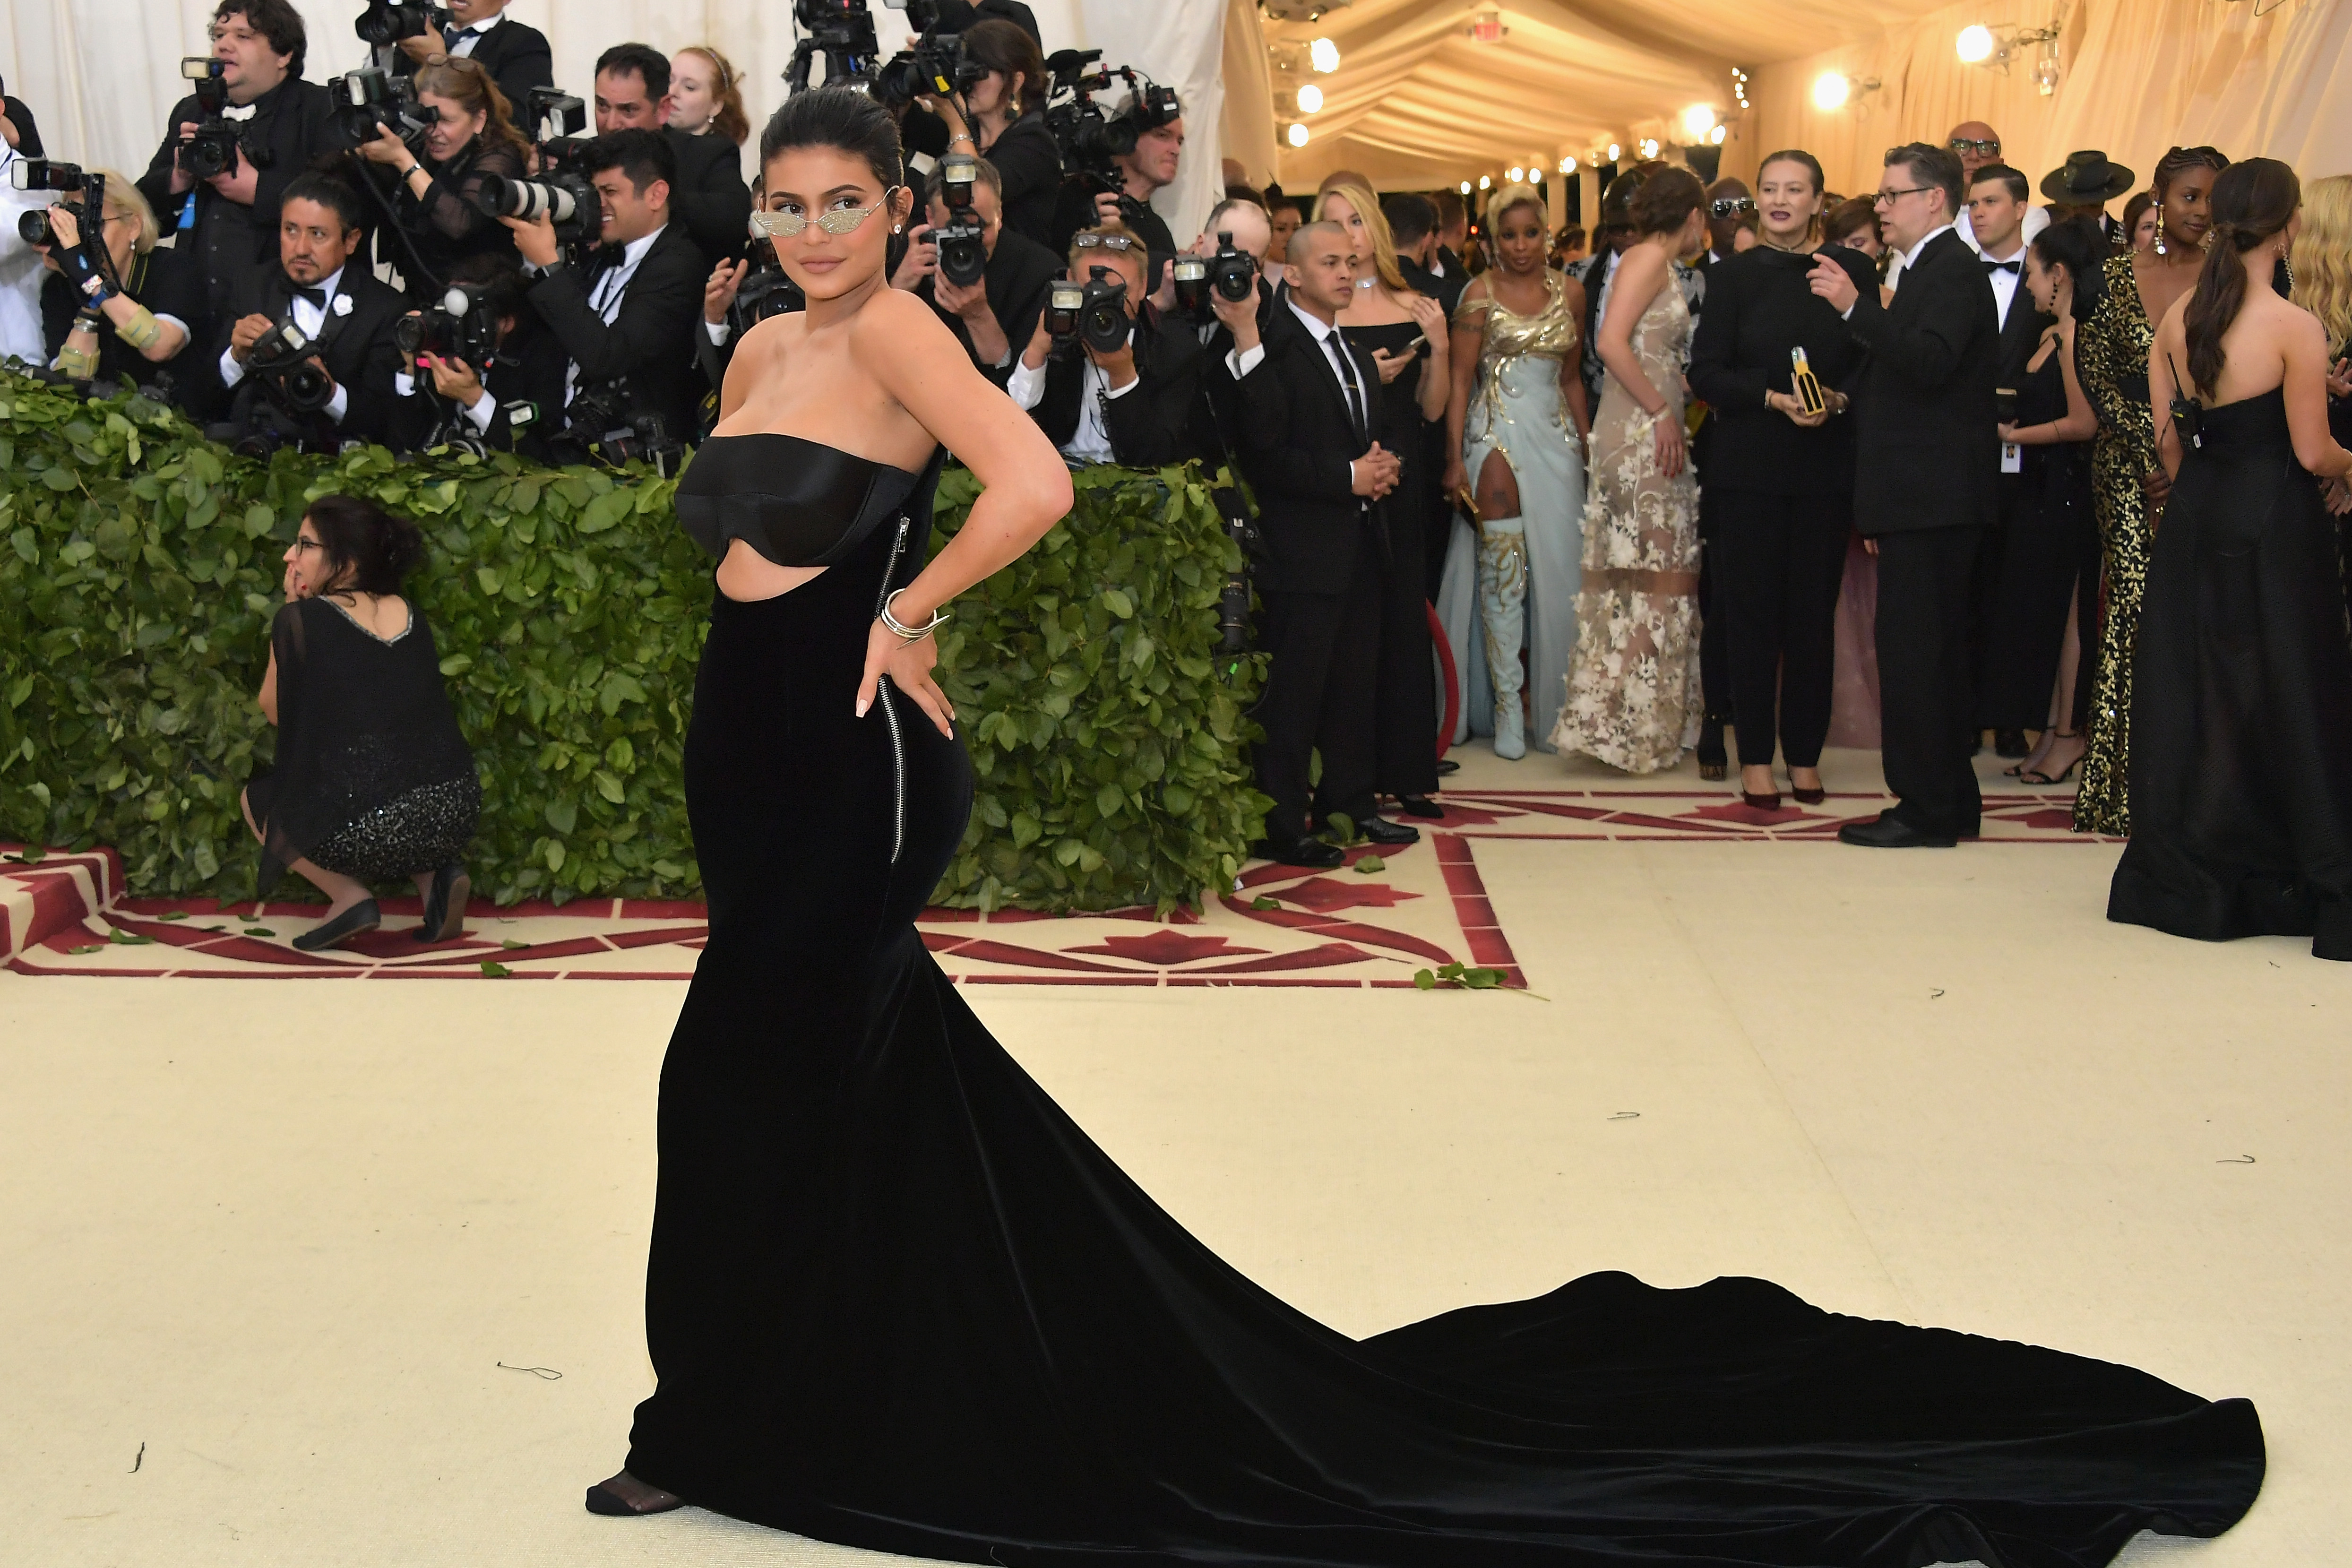 Kylie Jenner attends the Heavenly Bodies: Fashion & The Catholic Imagination Costume Institute Gala at The Metropolitan Museum of Art on May 7, 2018 in New York City. (Photo by Neilson Barnard/Getty Images)